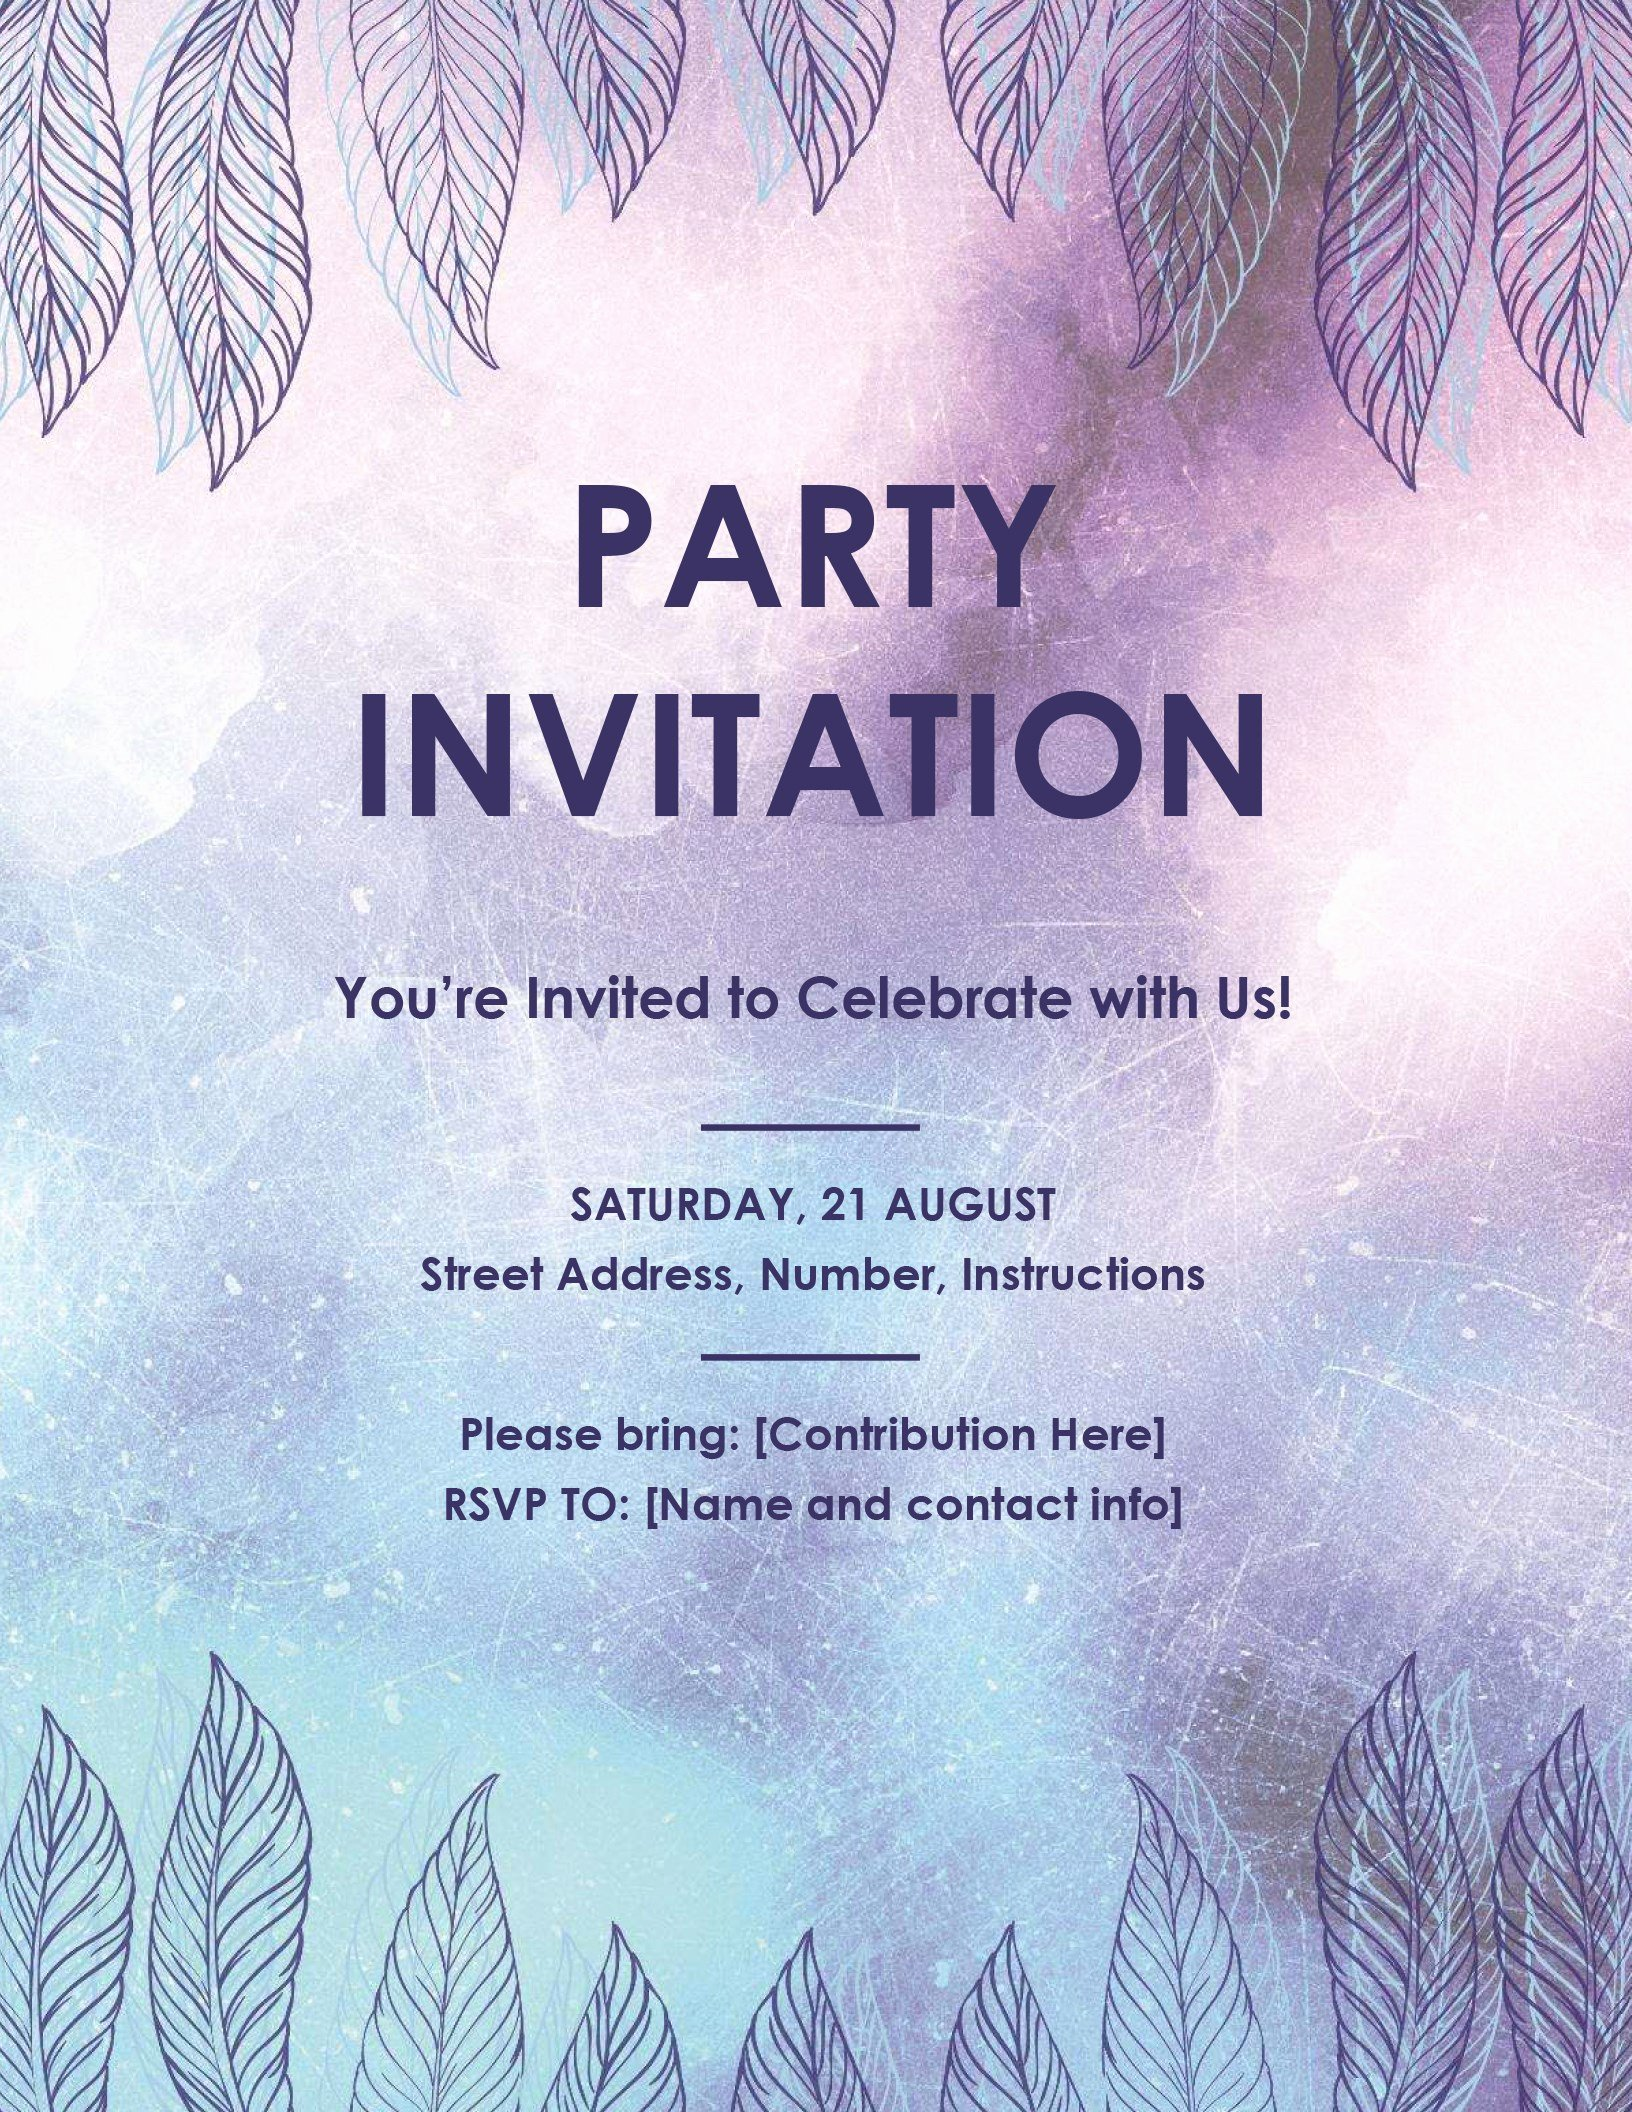 Word Template for Invitations Inspirational Party Invitation Flyer